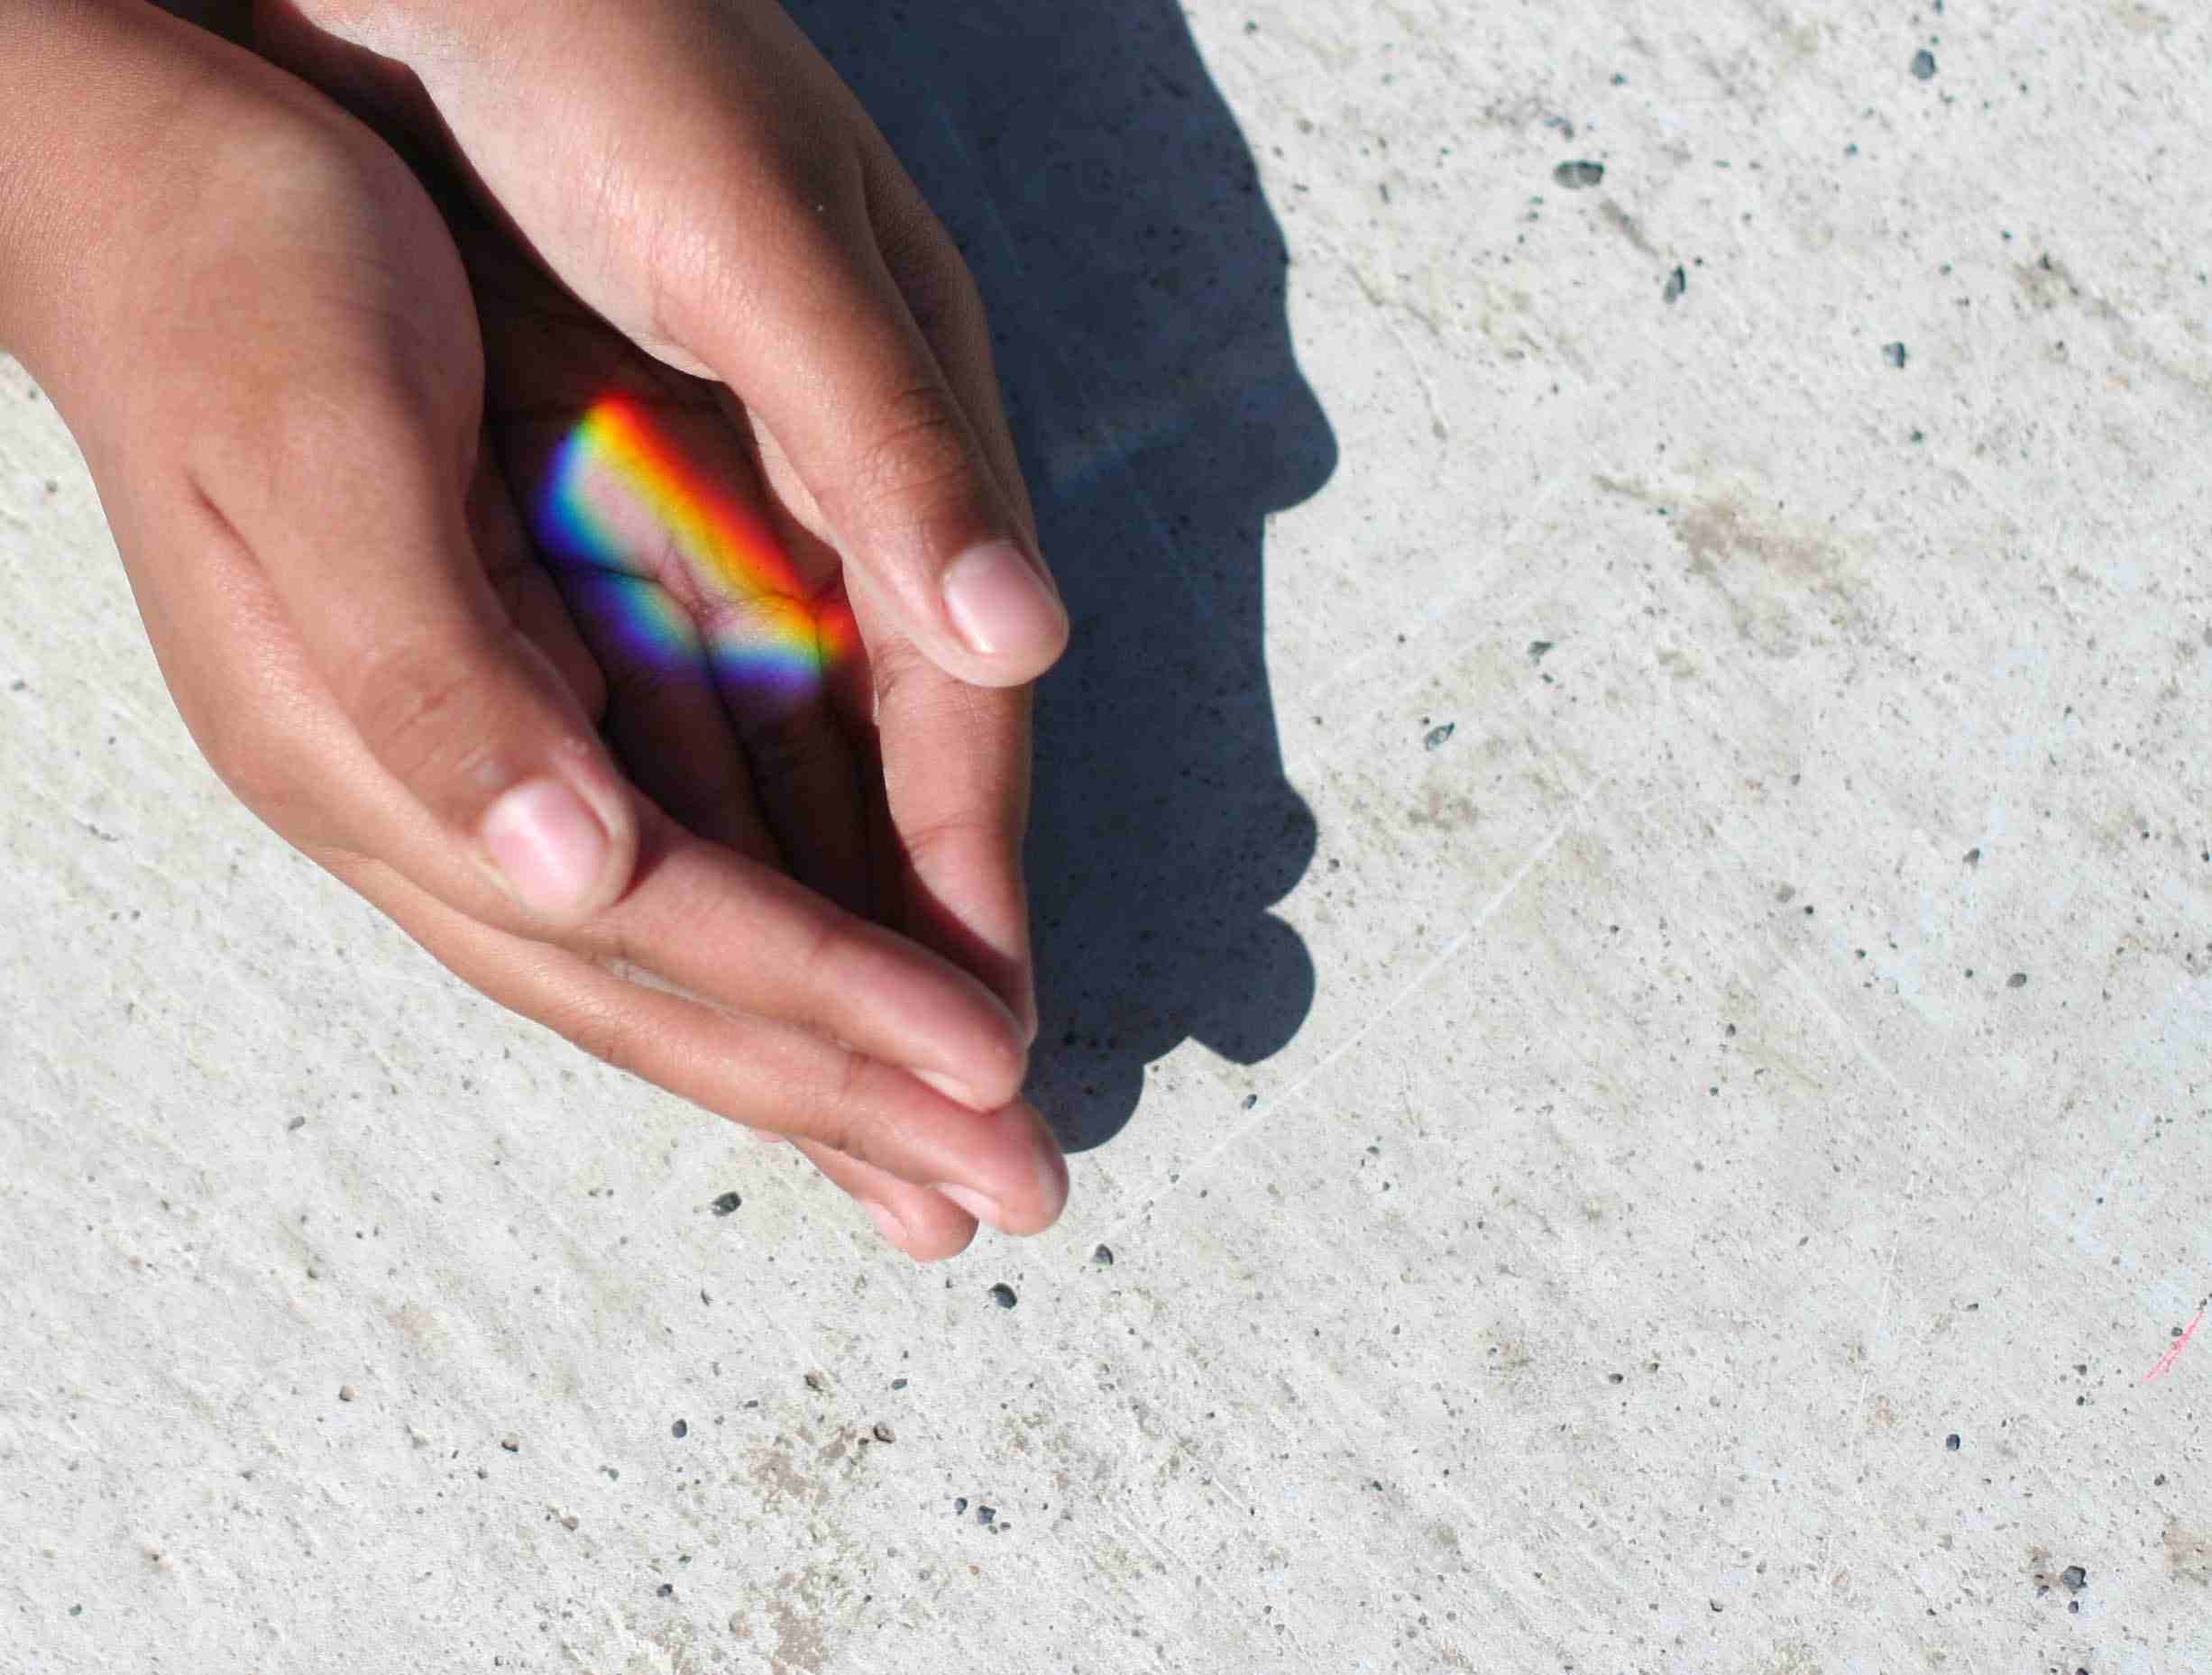 Small rainbow in her hand